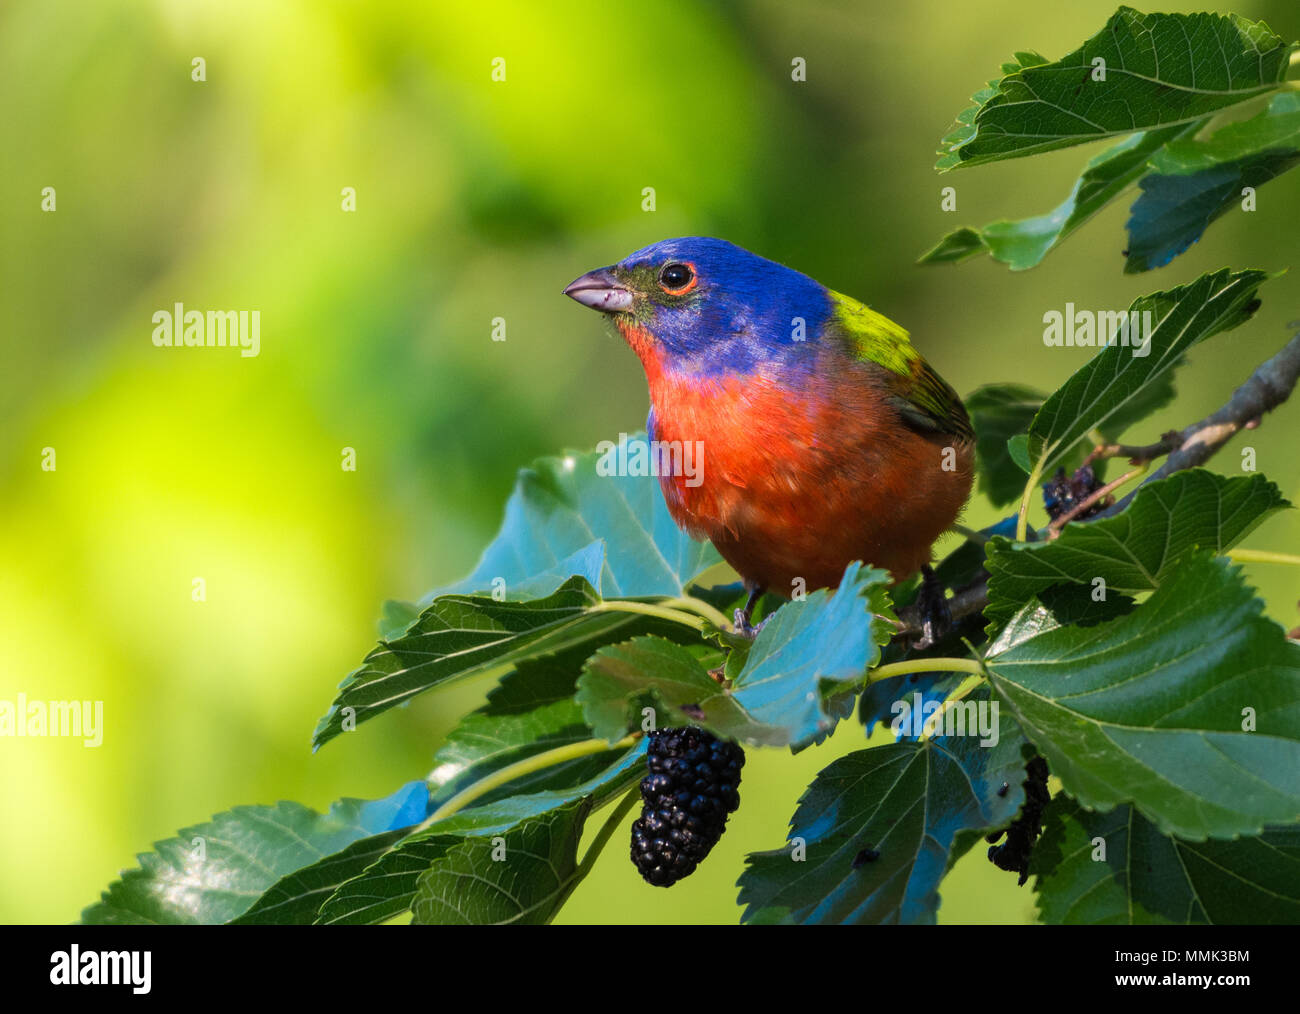 A colorful Painted Bunting (Passerina ciris) foraging on a mulberry tree. High Island, Texas, USA. - Stock Image